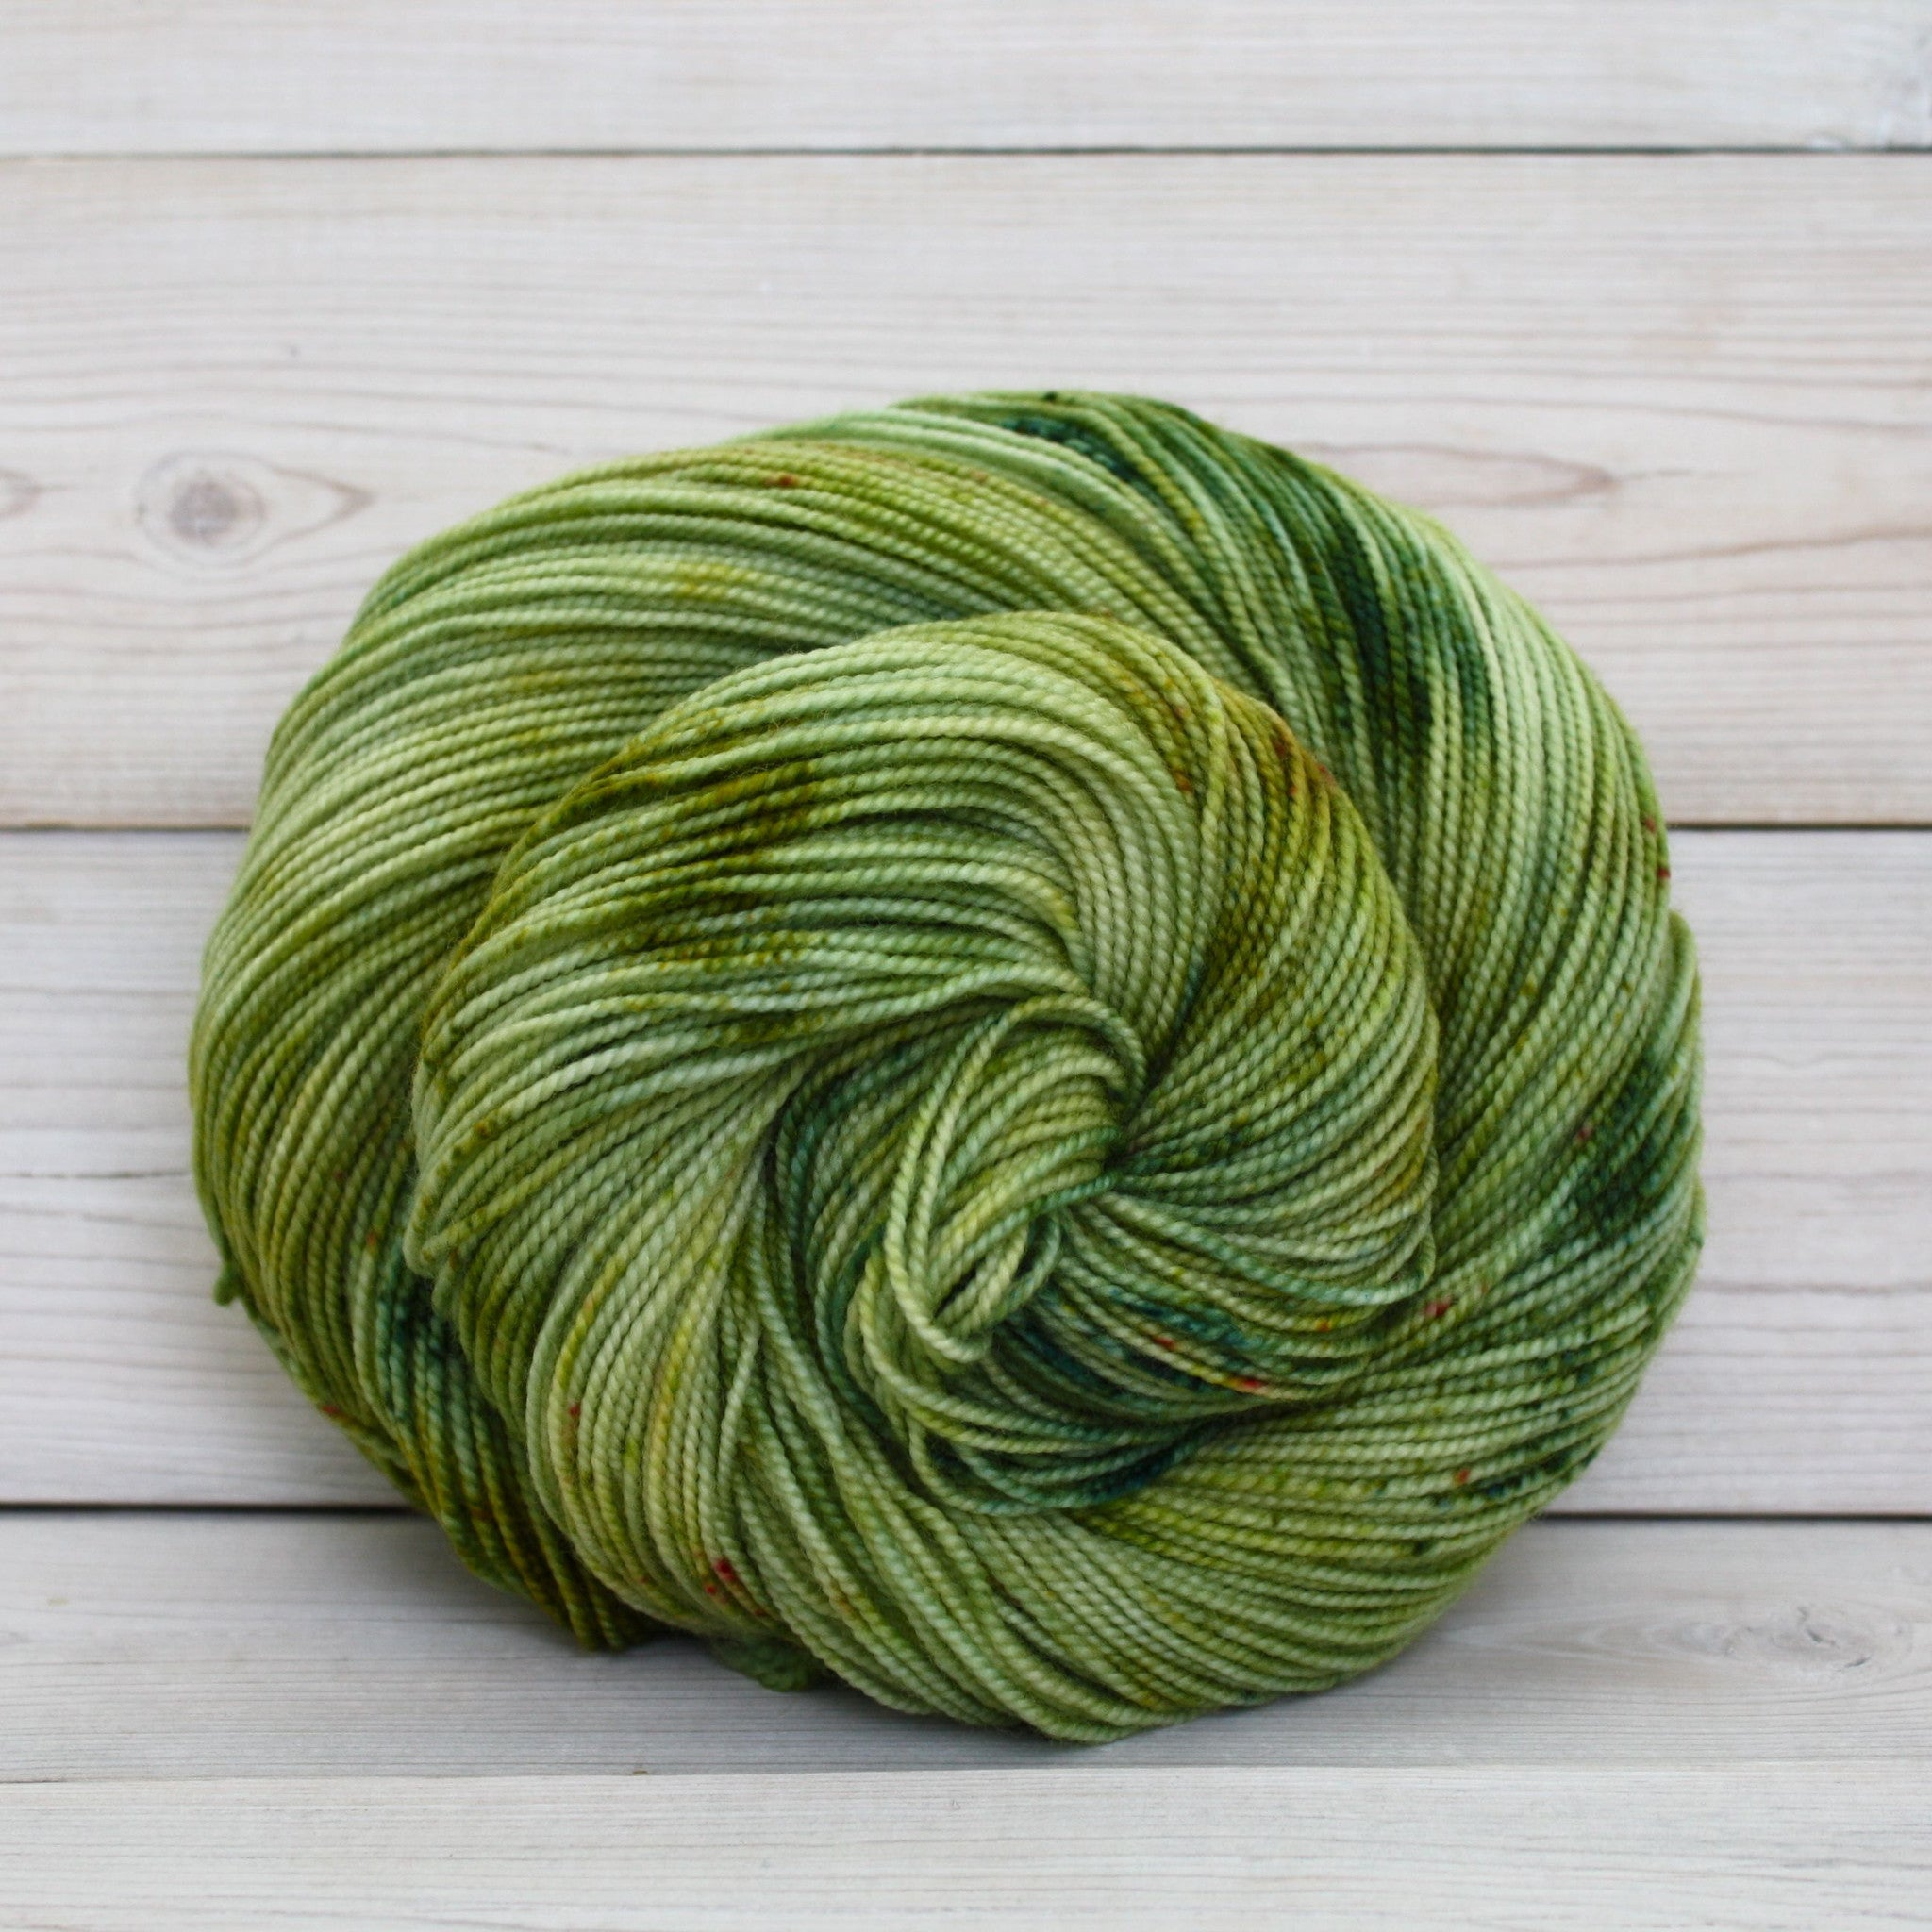 Celeste Yarn | Colorway: Lichen